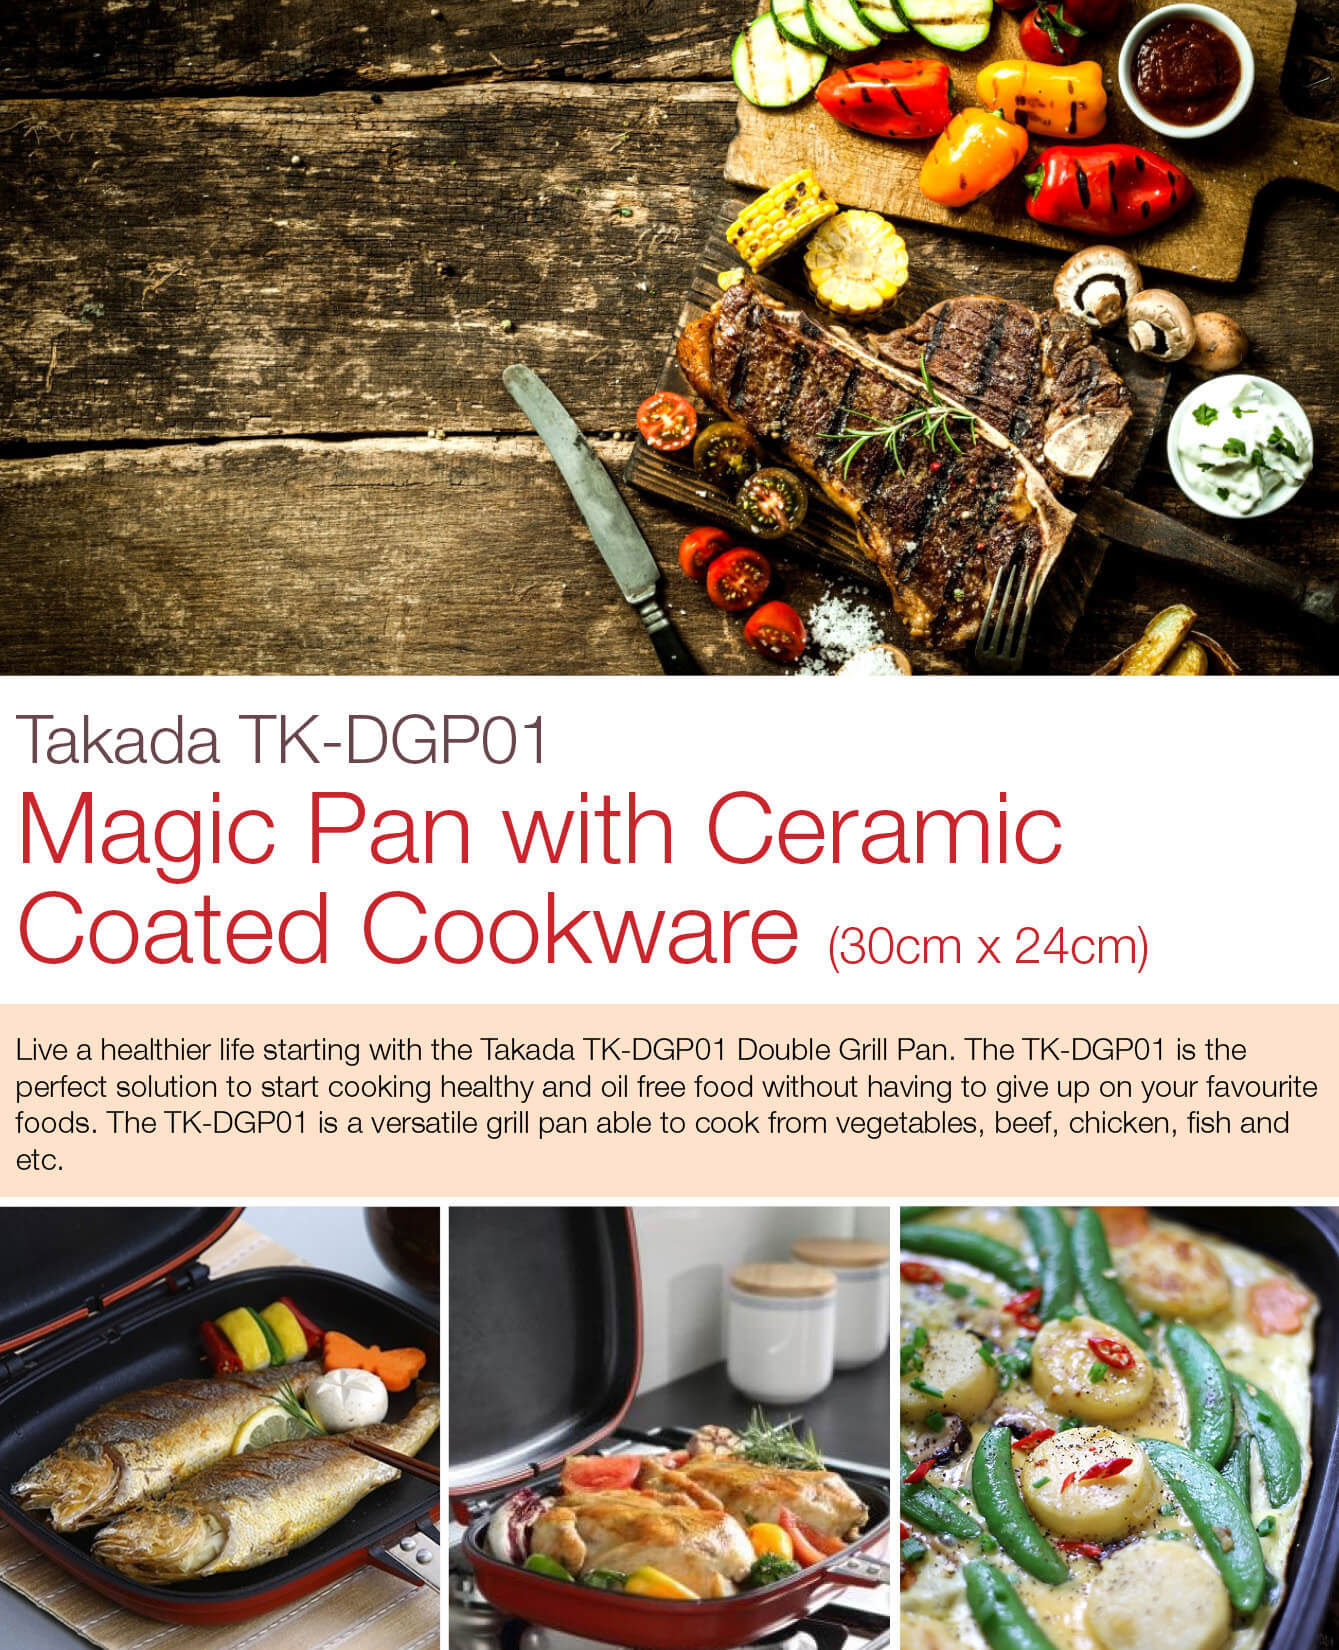 takada-tk-dgp01-magic-pan-with-ceramic-coated-cookware